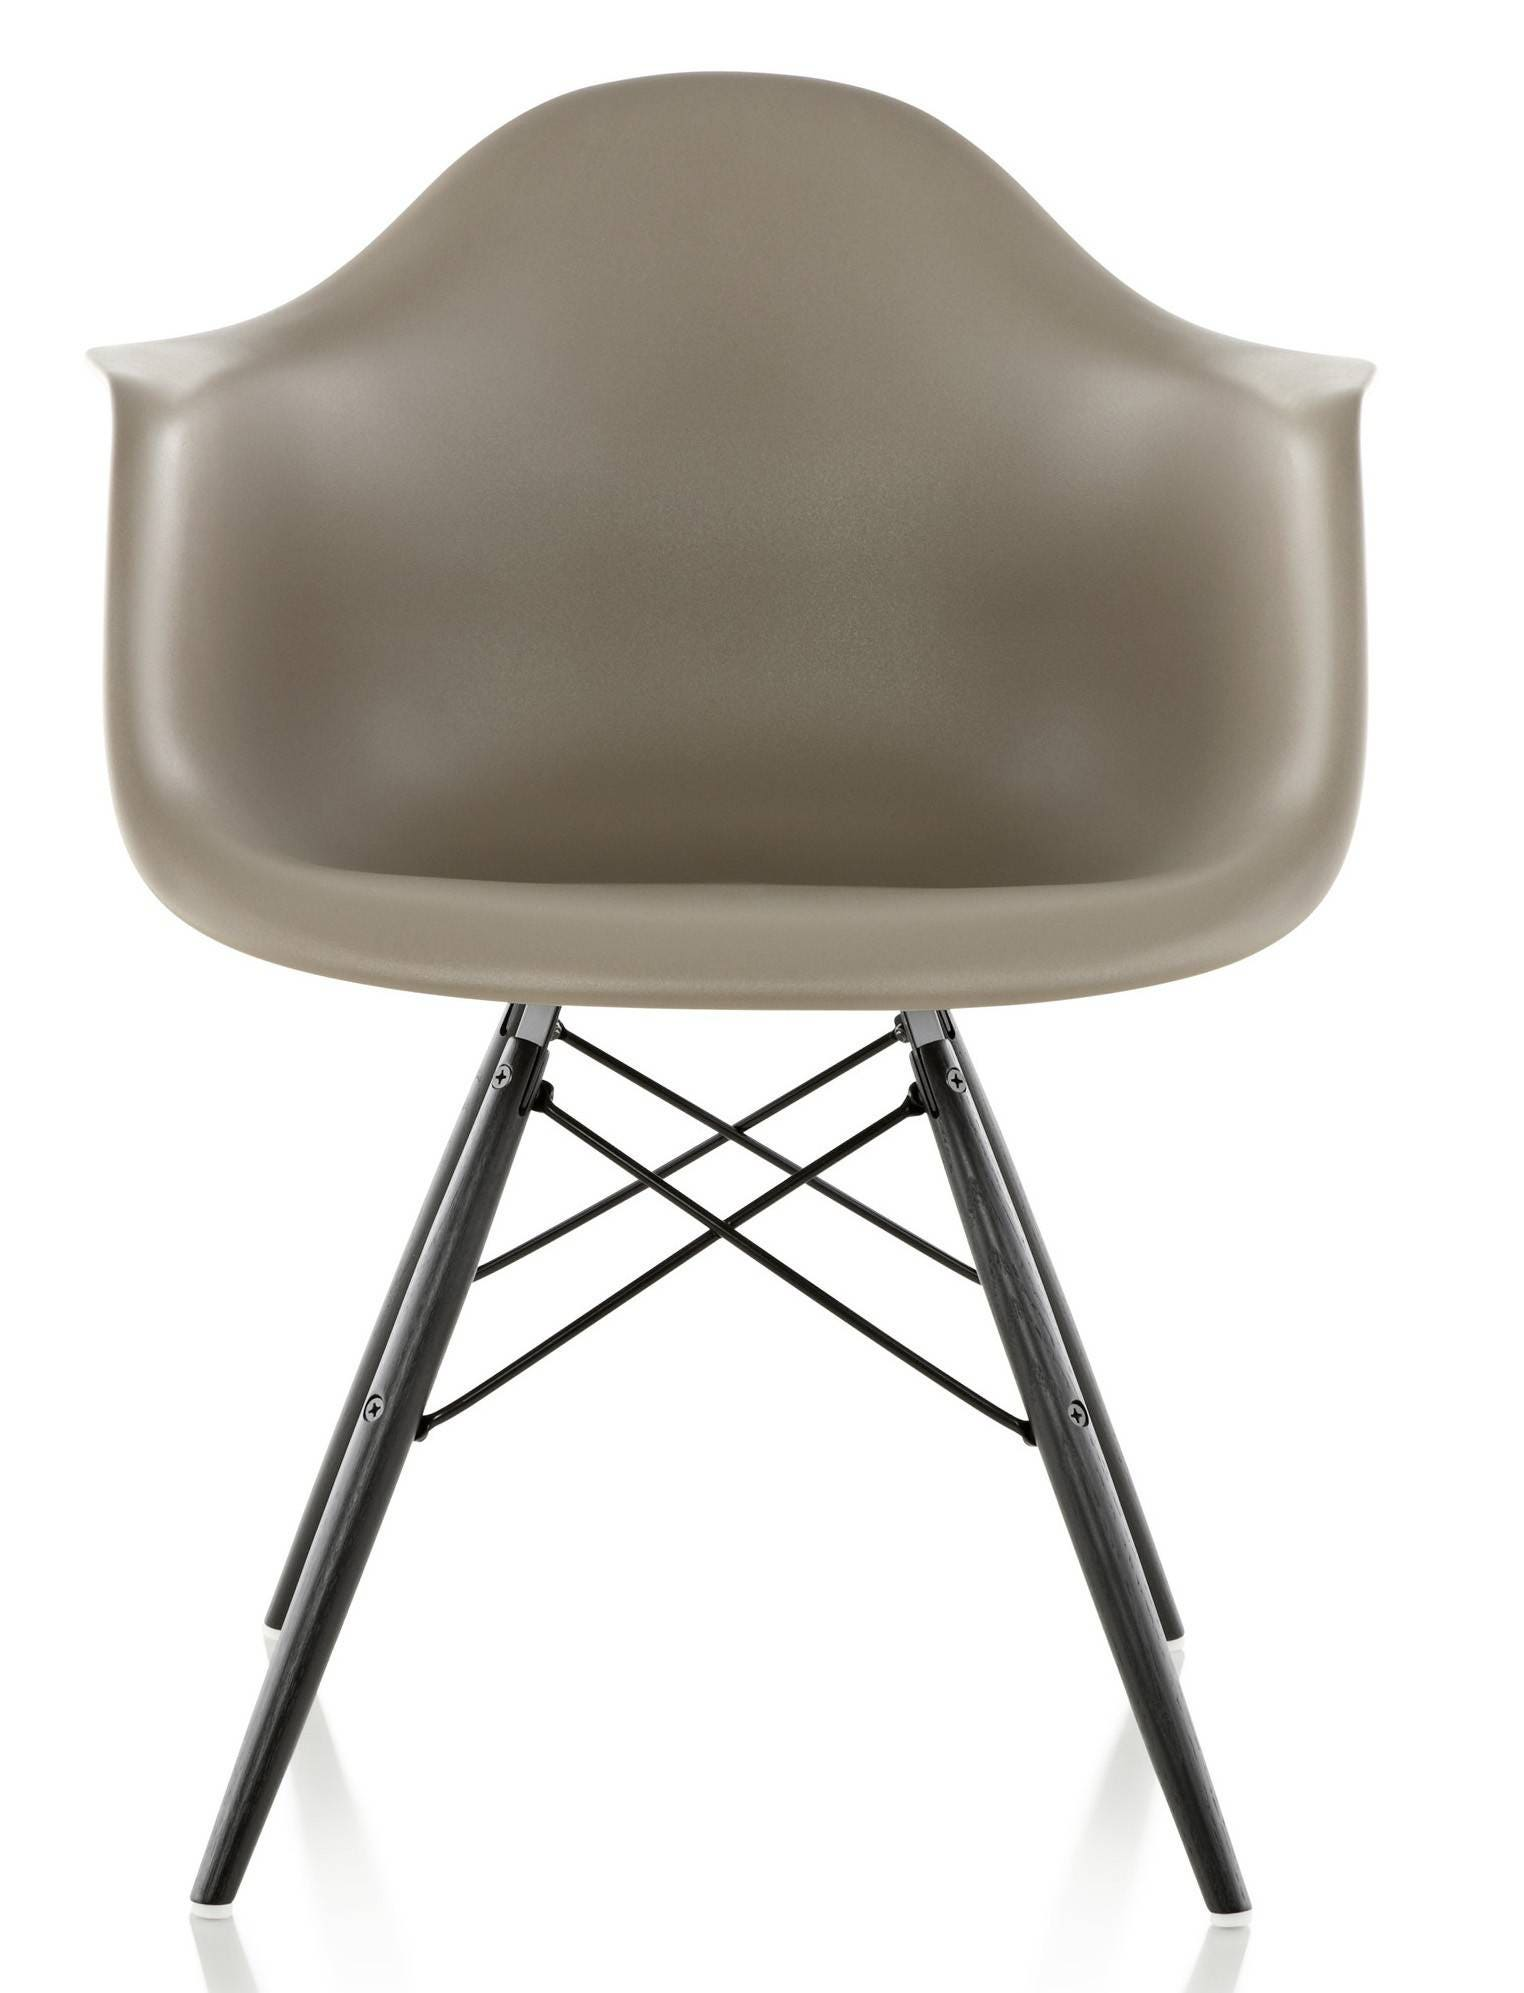 Eames Molded Plastic Armchair 1